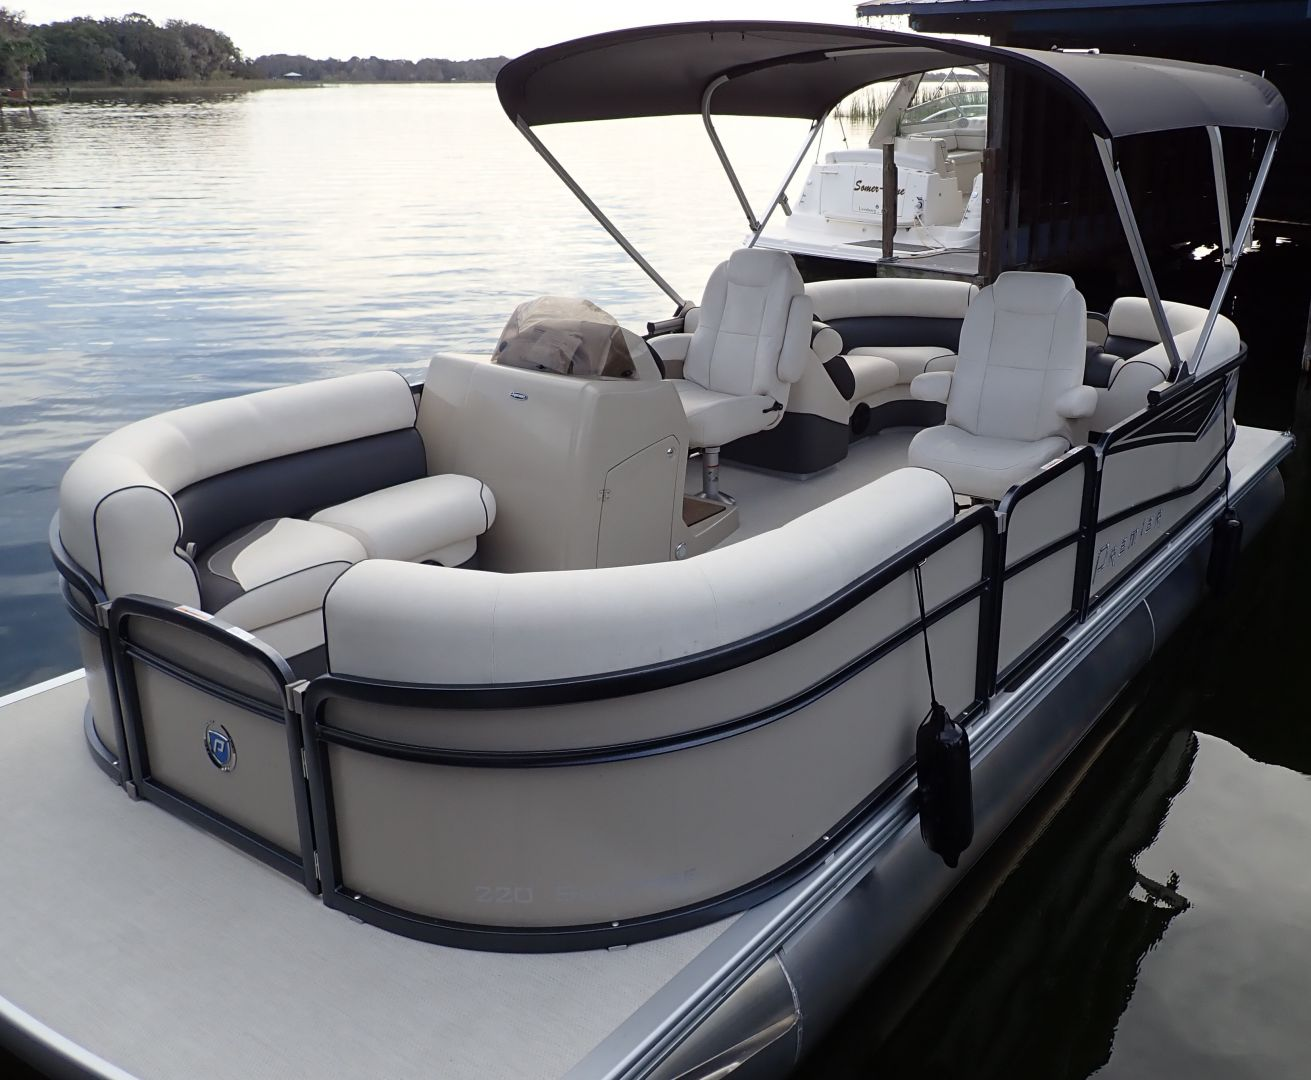 Harris Chain Of Lakes Boat Rentals Mount Dora Boating